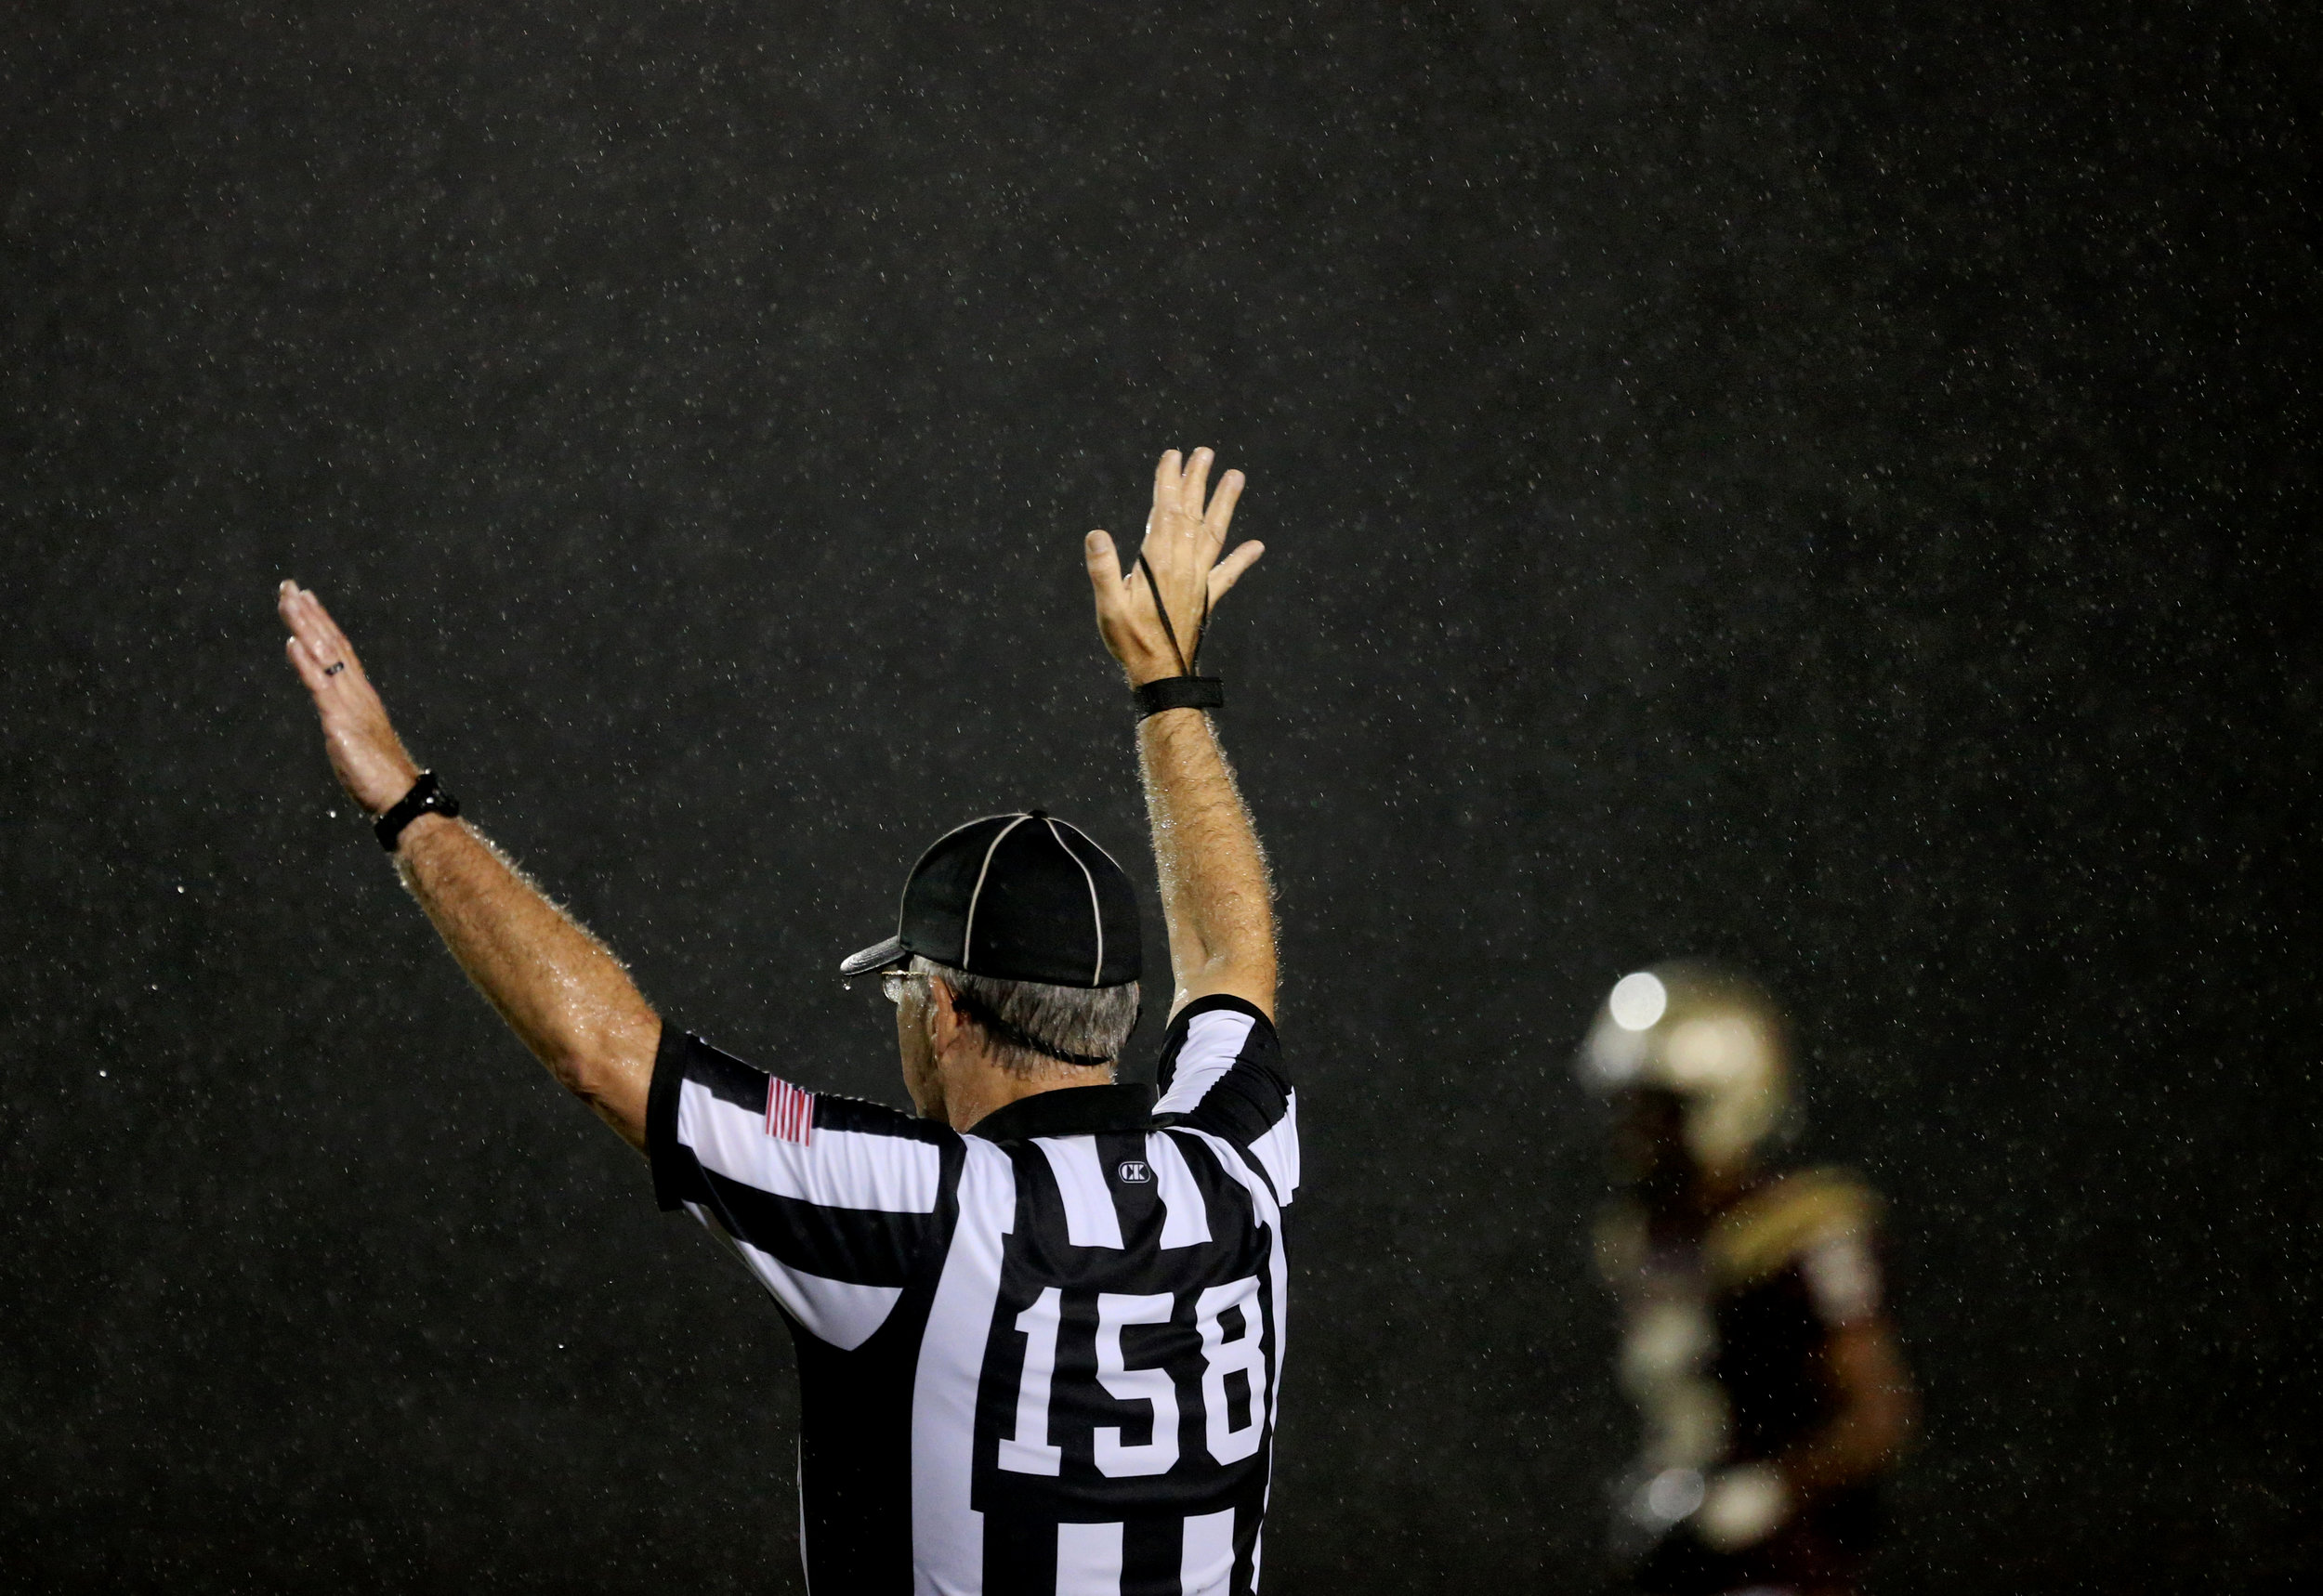 An official raises his arms to stop play during a driving rain in the game between King's Fork and Indian River, Friday, Oct. 13, 2017 in Suffolk.